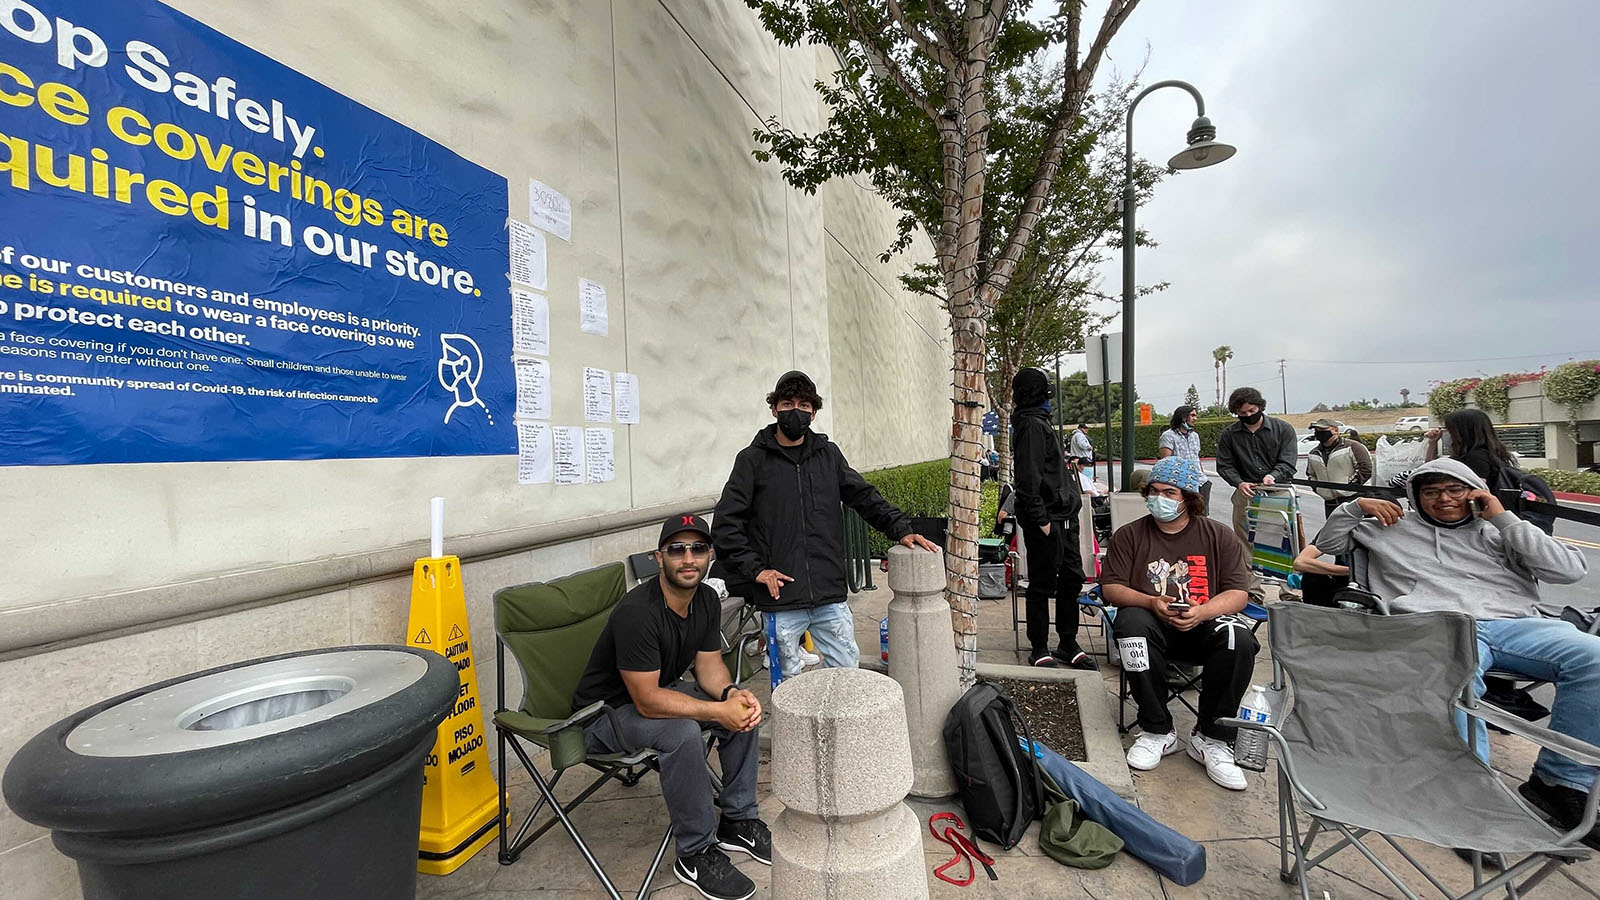 Customers Outside A Best Buy Hoping To Buy An RTX 3080 Ti